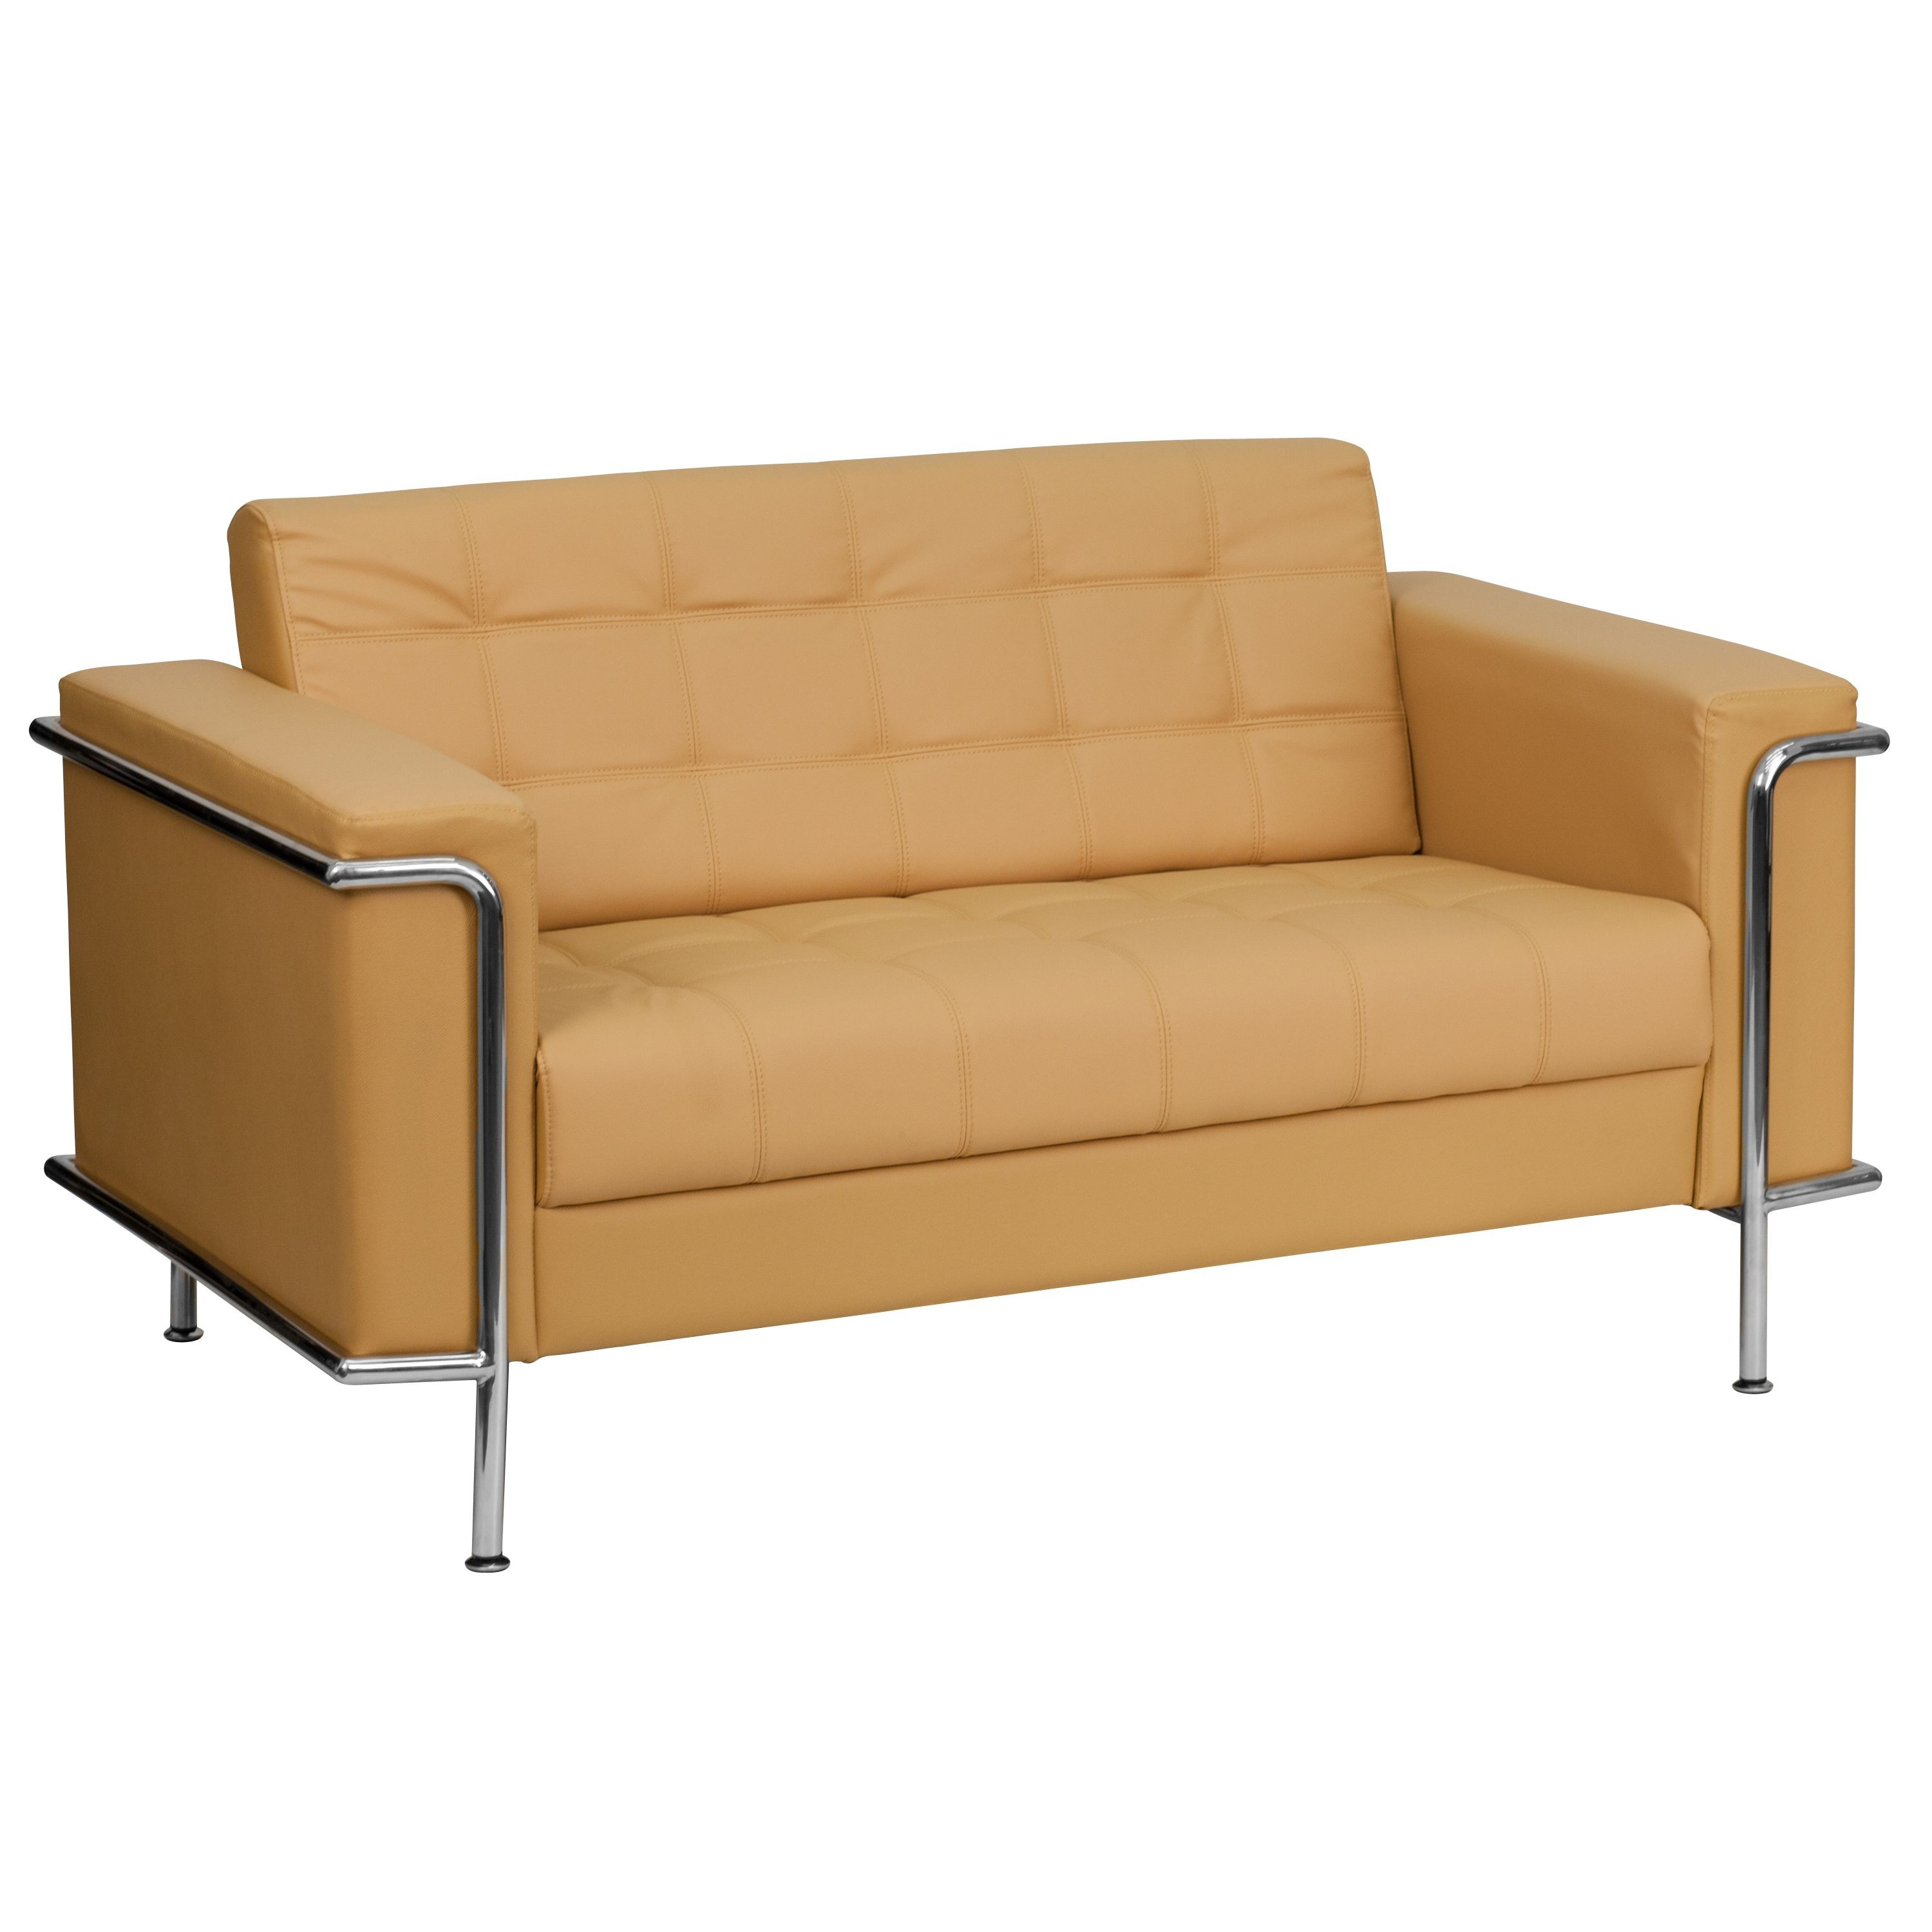 Lesley Series Contemporary Light Brown Leather Love Seat with Encasing Frame